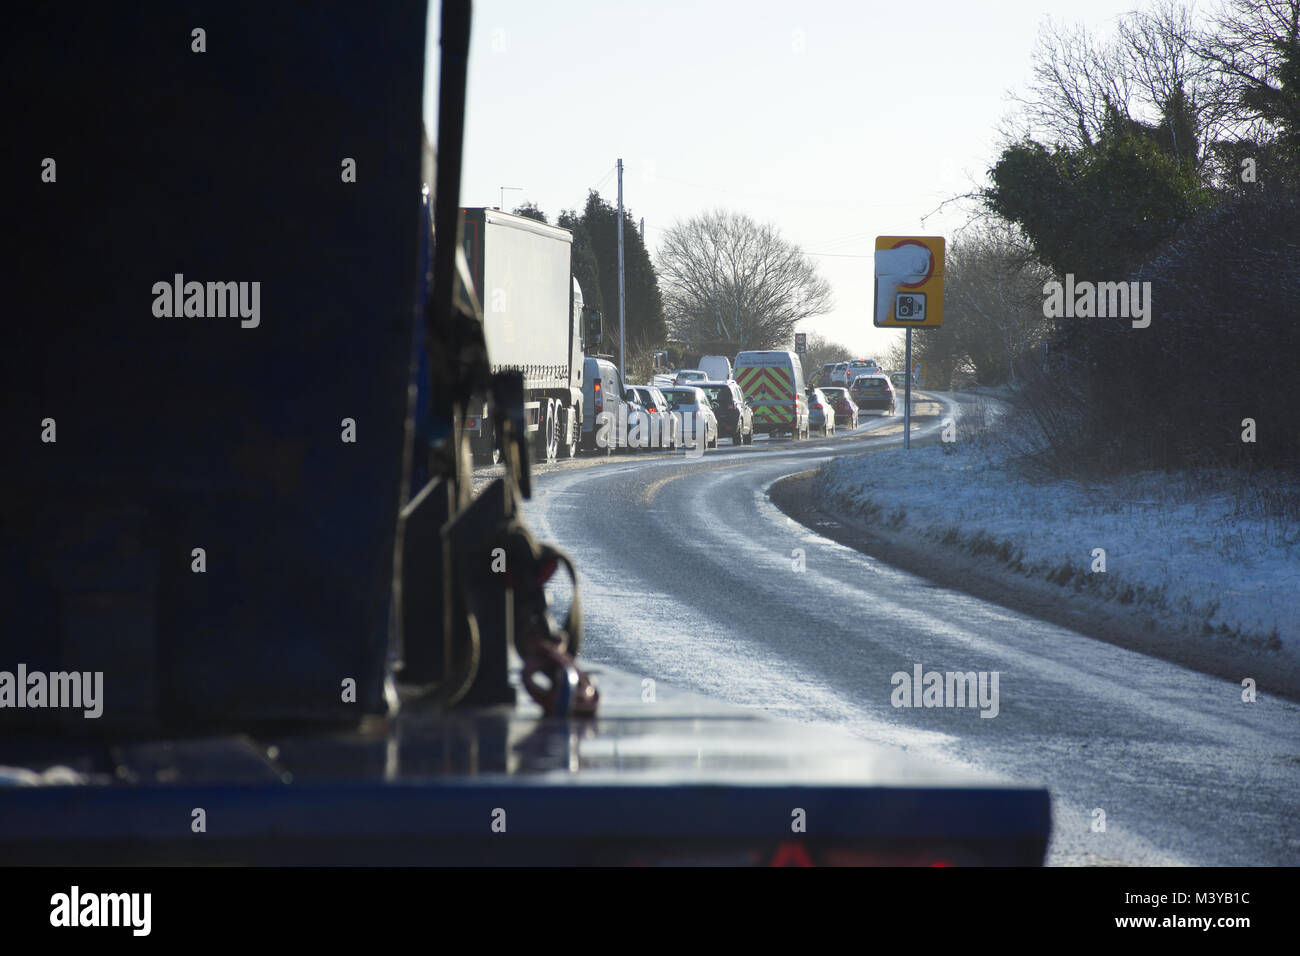 West Midlands,UK.12 February 2018.UK Weather.Icy conditions on Staffordshire roads causing severe delays and disruptions - Stock Image